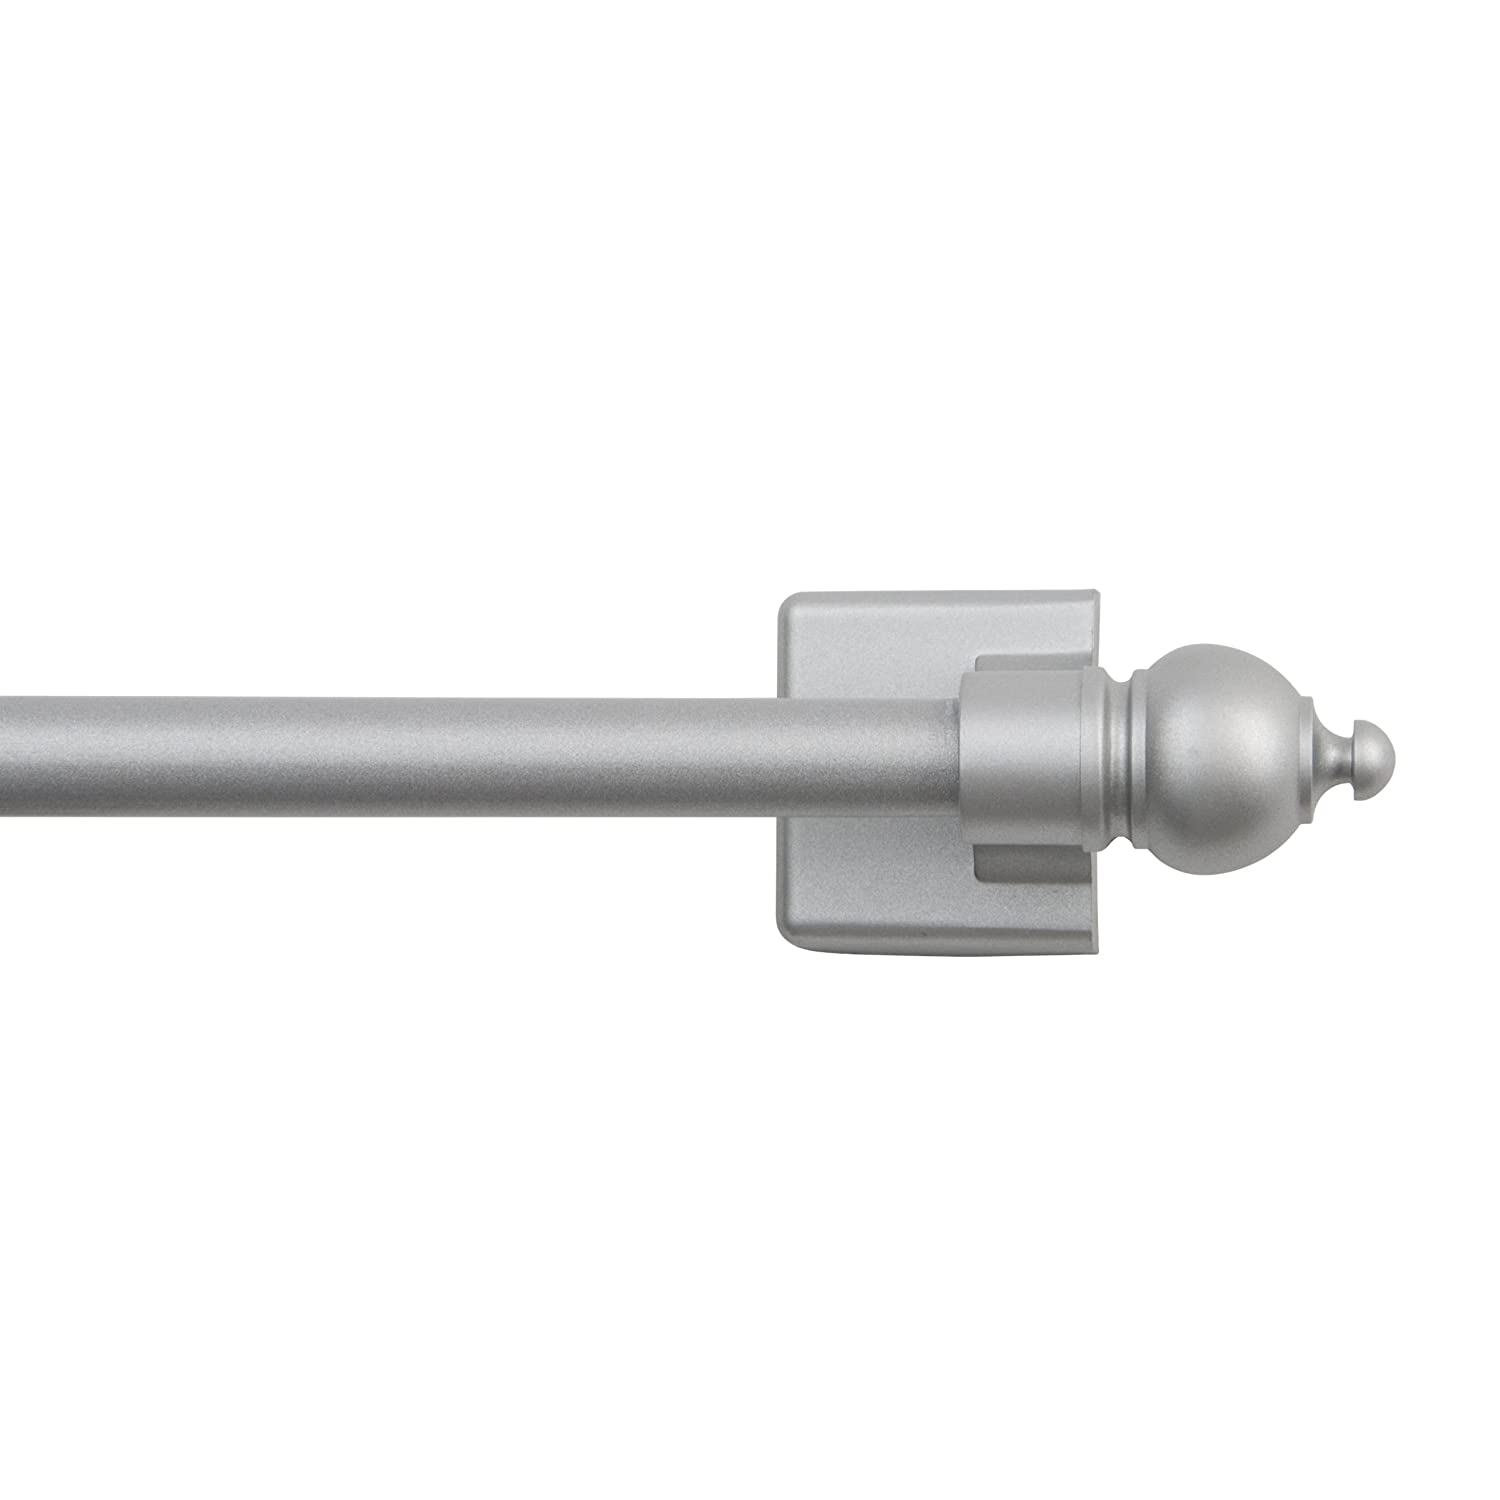 Kenney Magnetic Window Curtain Rod, 16 to 28-Inch, Silver 40343